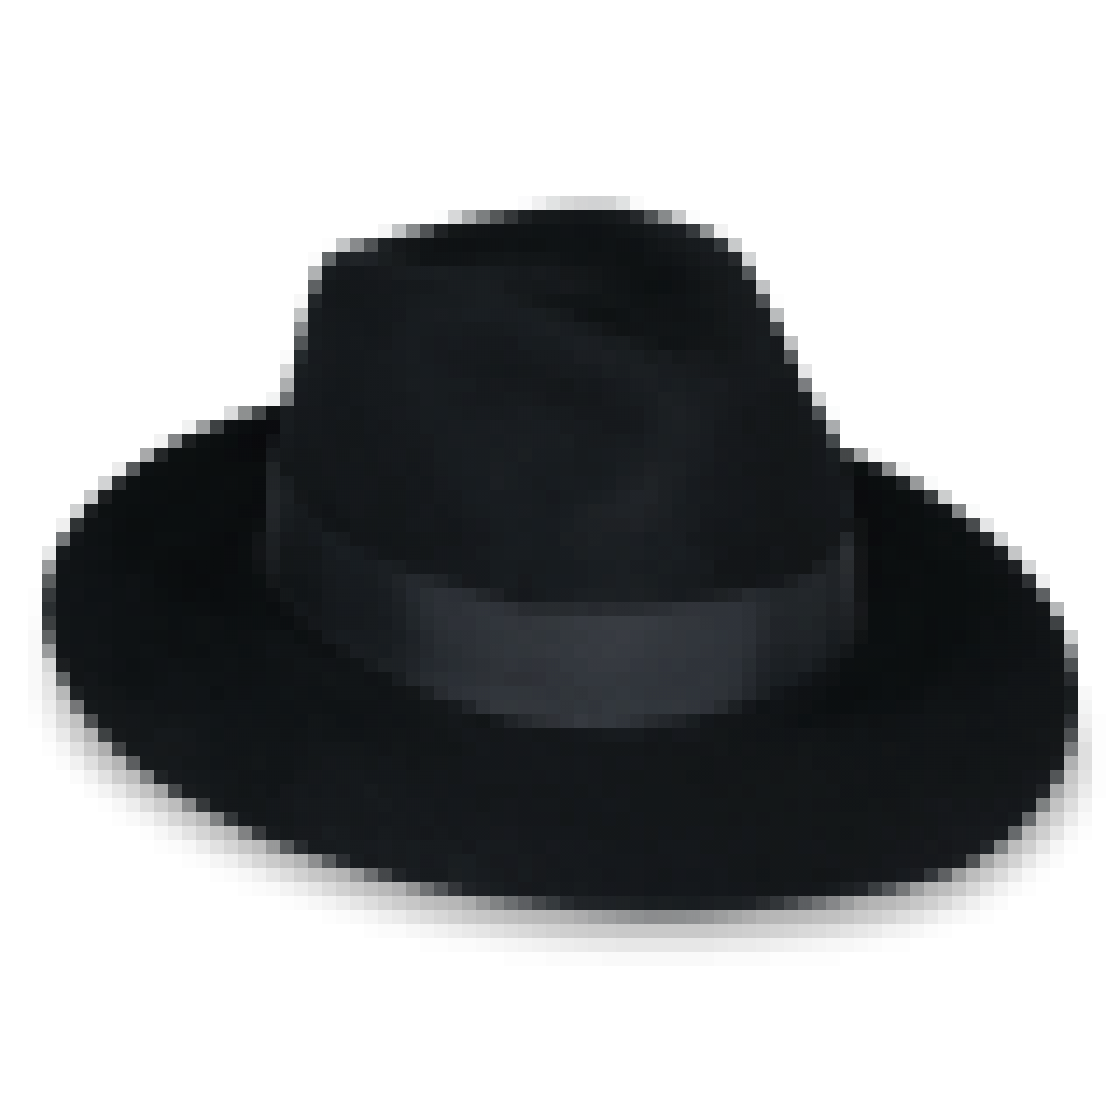 Black fedora png. Hat transparent images pluspng